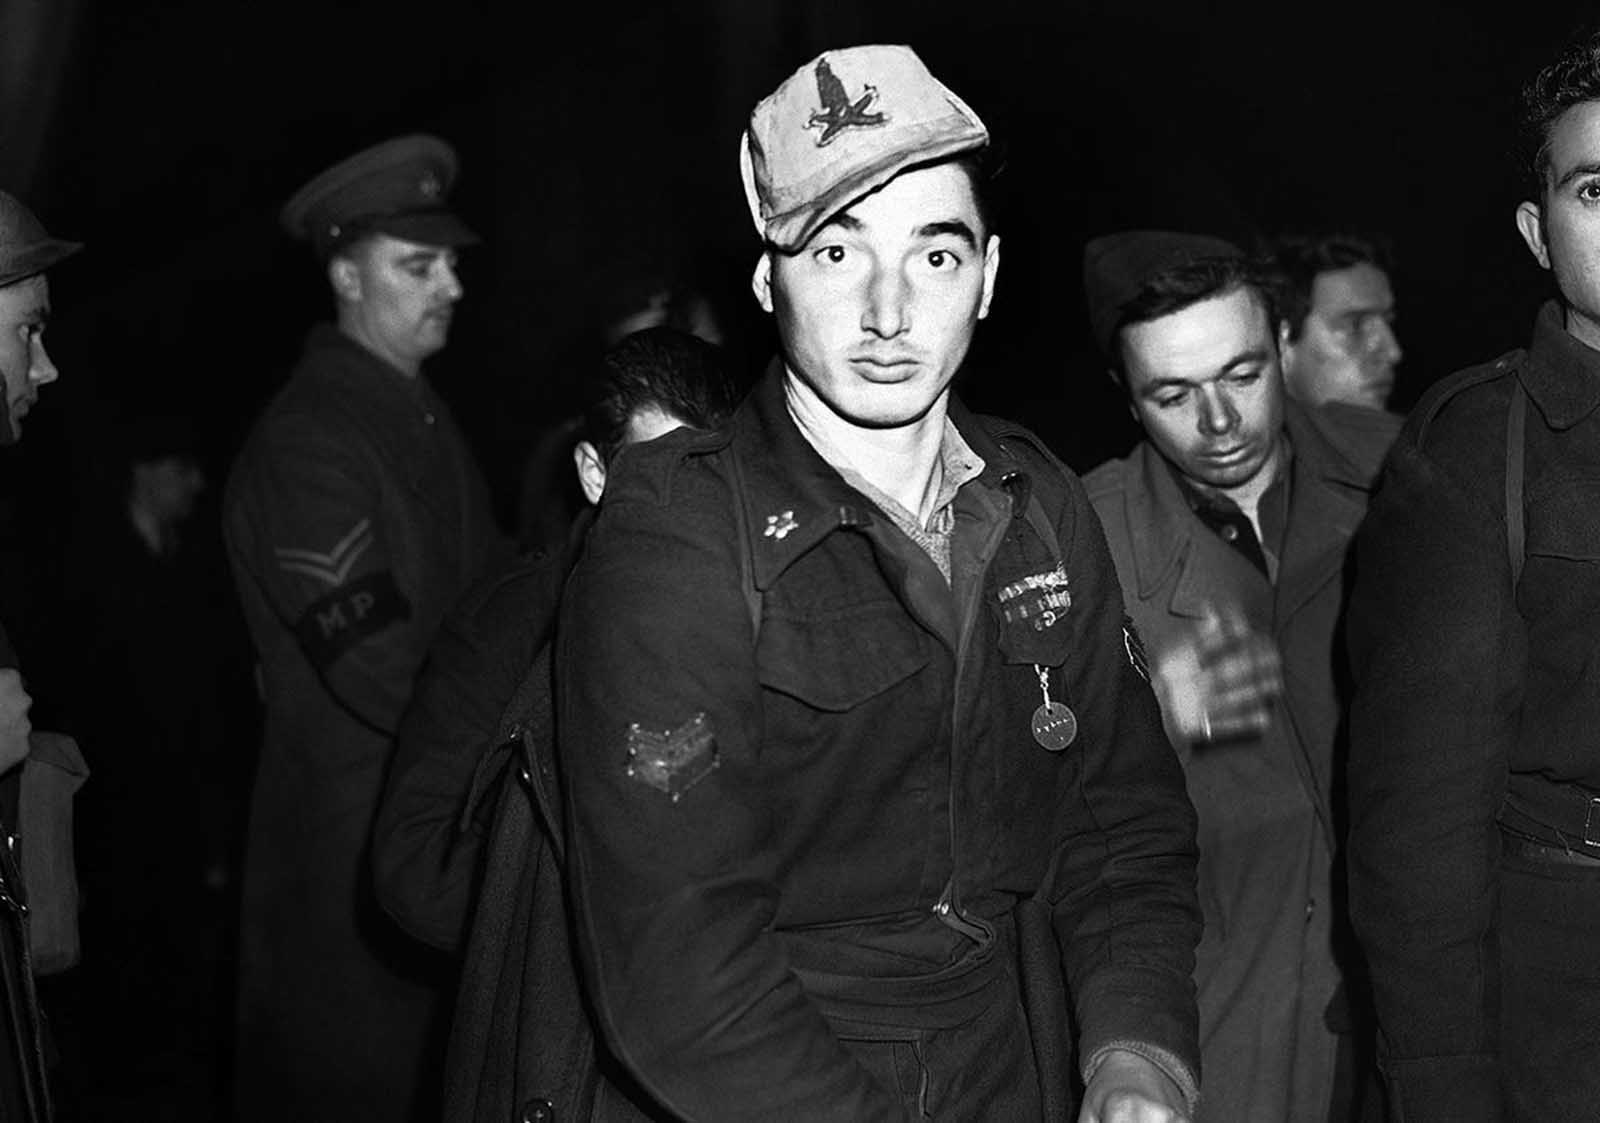 One of the many Italian prisoners of war captured in Libya, who arrived in London on January 2, 1942. This one is still wearing his Africa Corps cap.